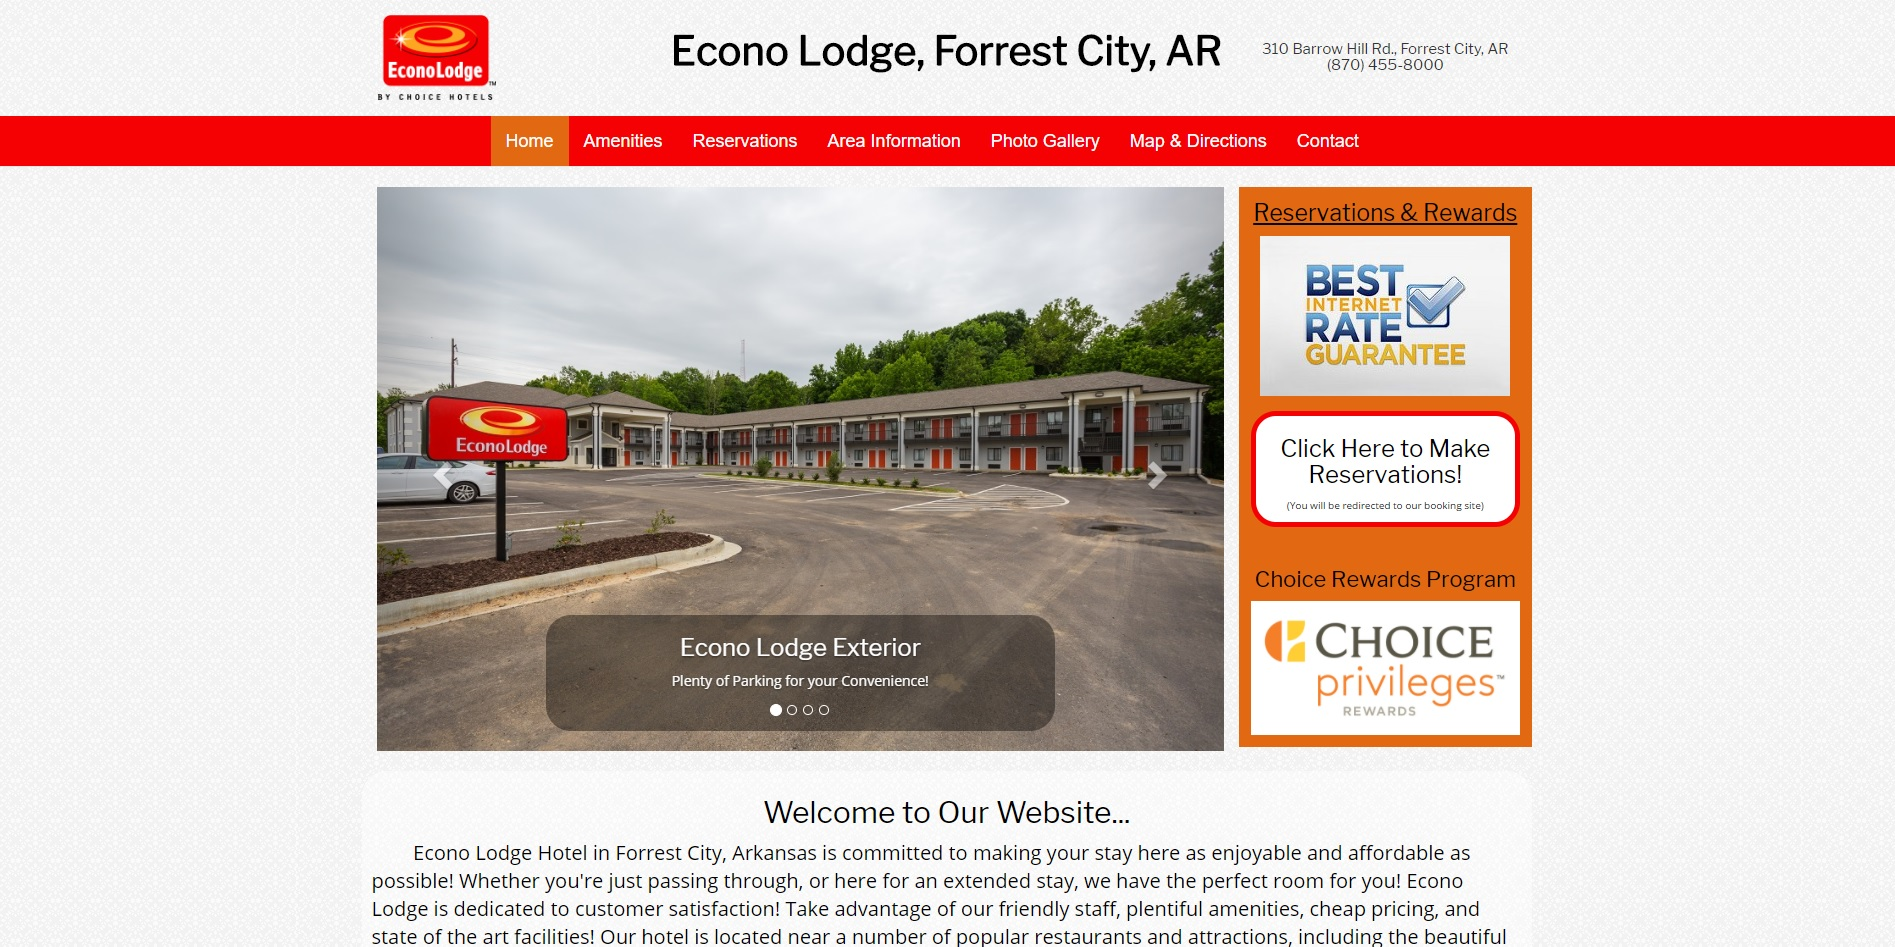 Econo Lodge Forrest City,AR